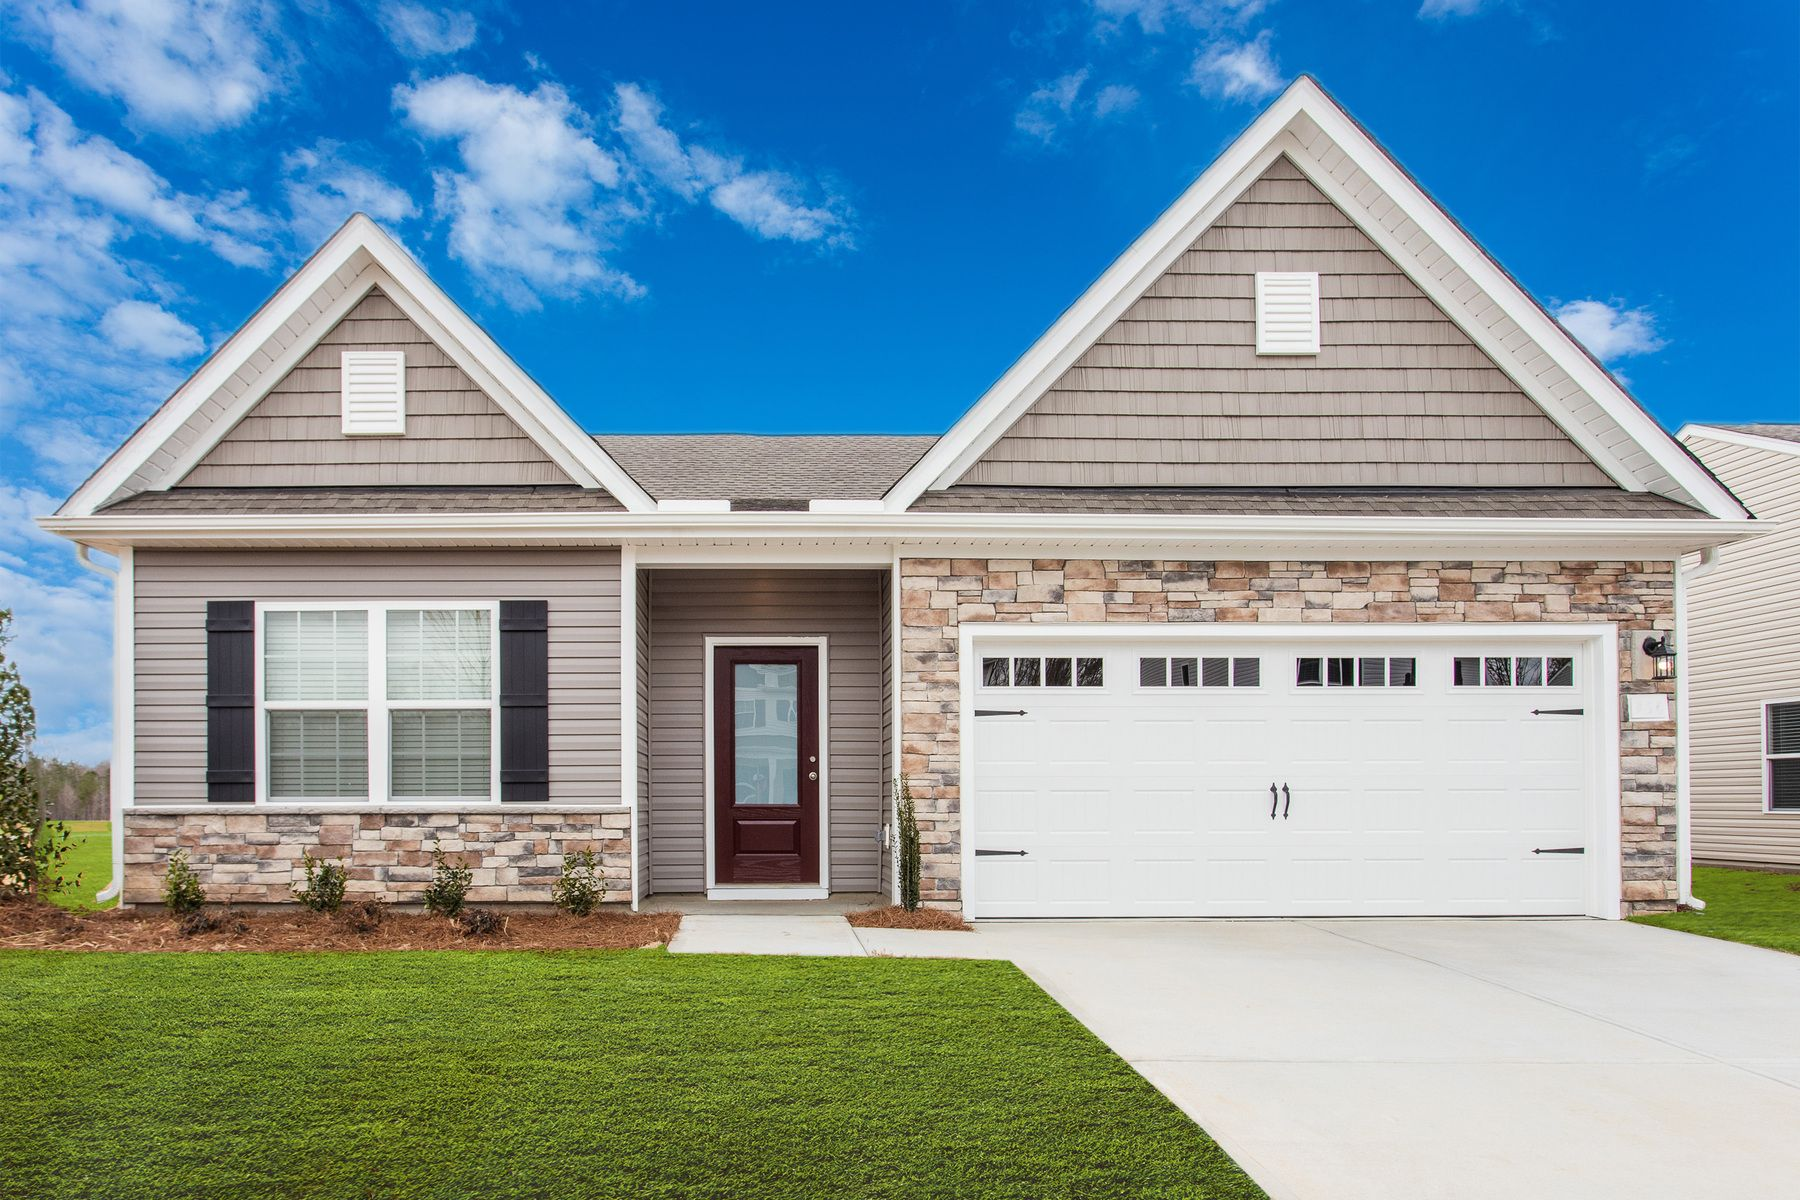 Allatoona:WyndWater by LGI Homes